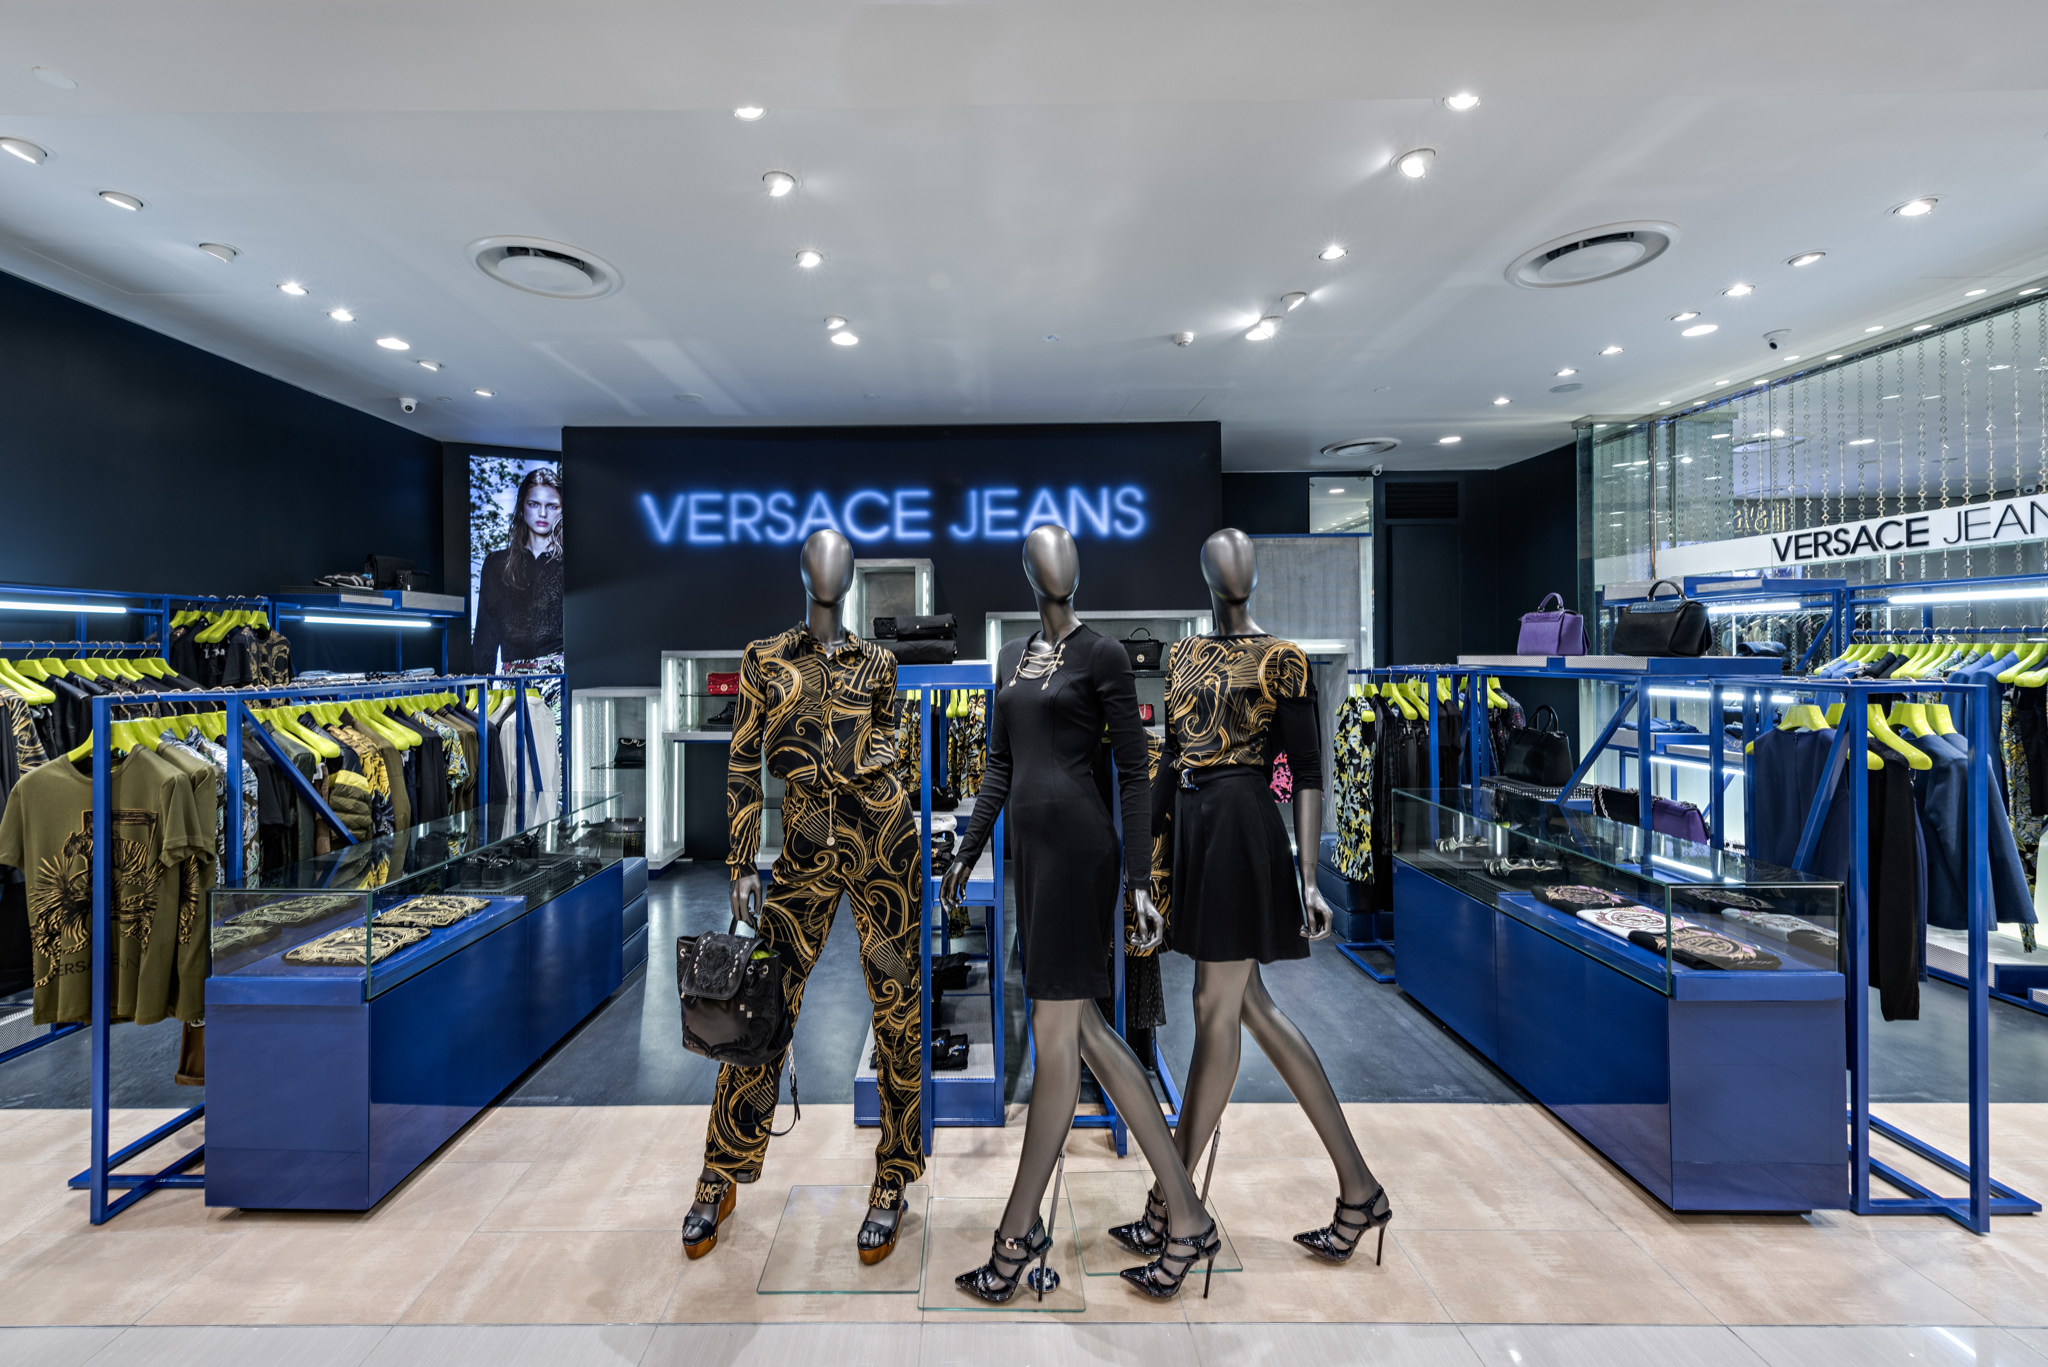 20160729 - Versace Jean - HCM - Commercial - Interior - Store - Retouch 0004.jpg